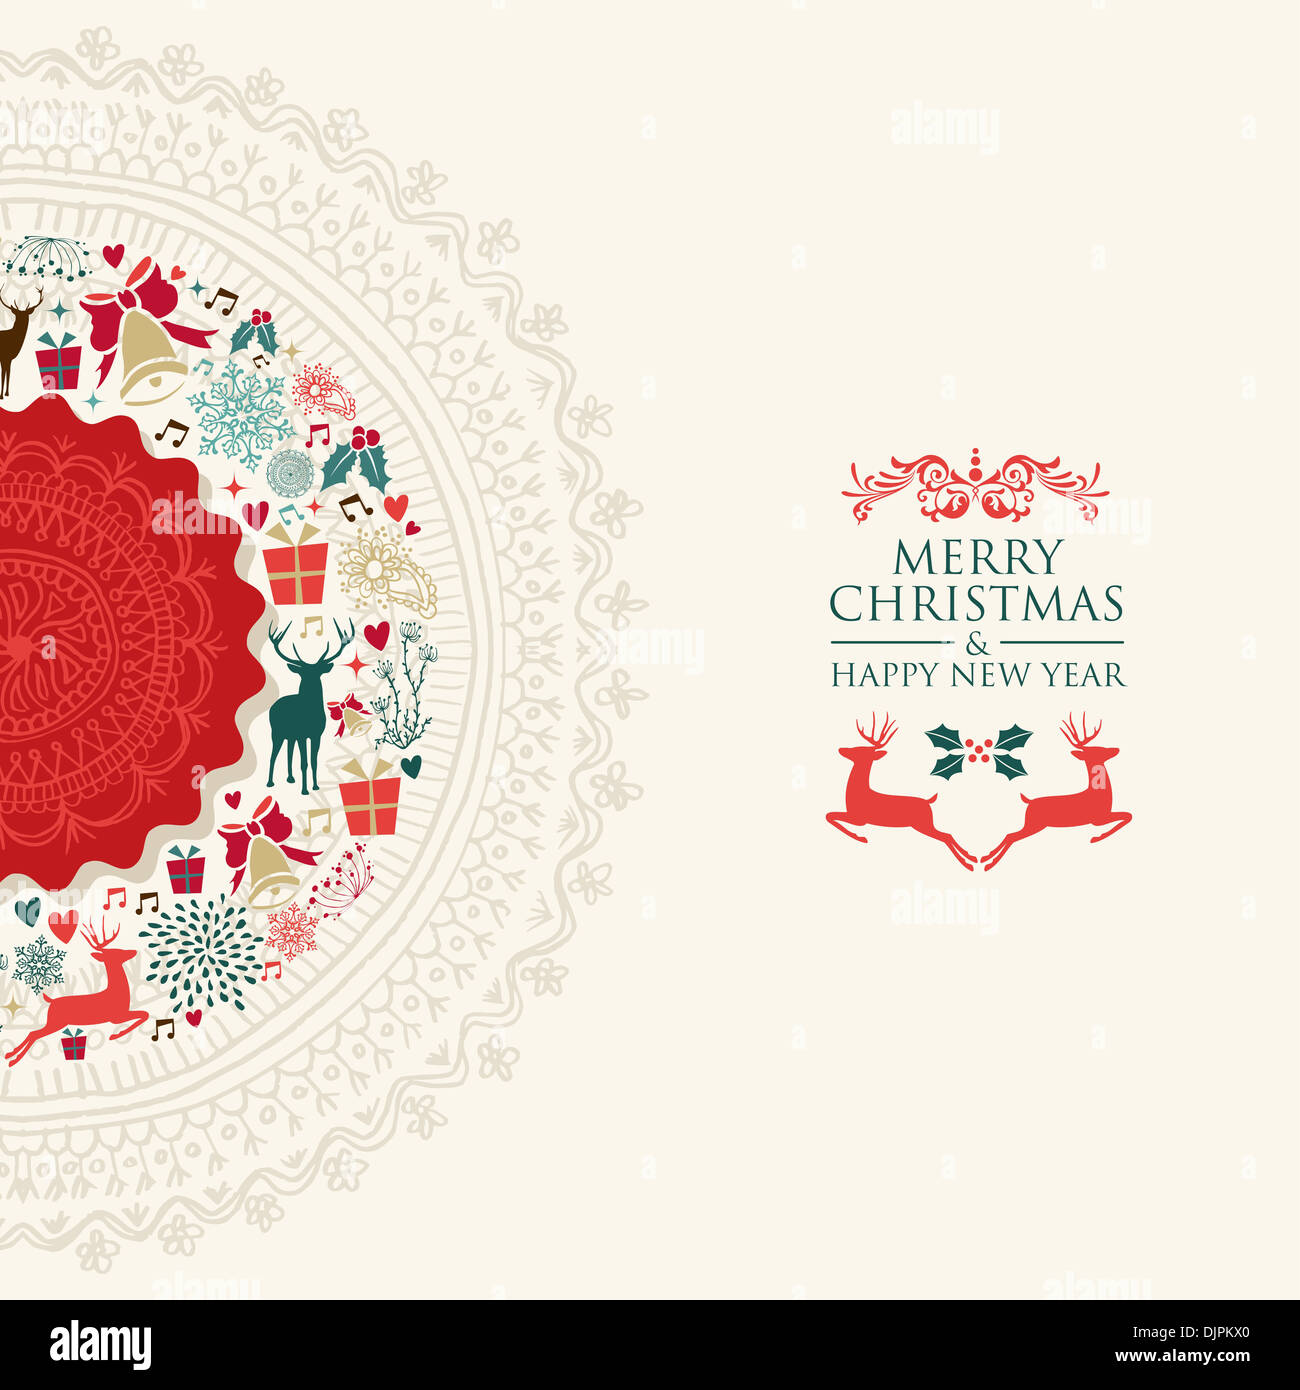 Merry christmas and happy new year greeting card eps10 vector merry christmas and happy new year greeting card eps10 vector file organized in layers for easy editing kristyandbryce Choice Image